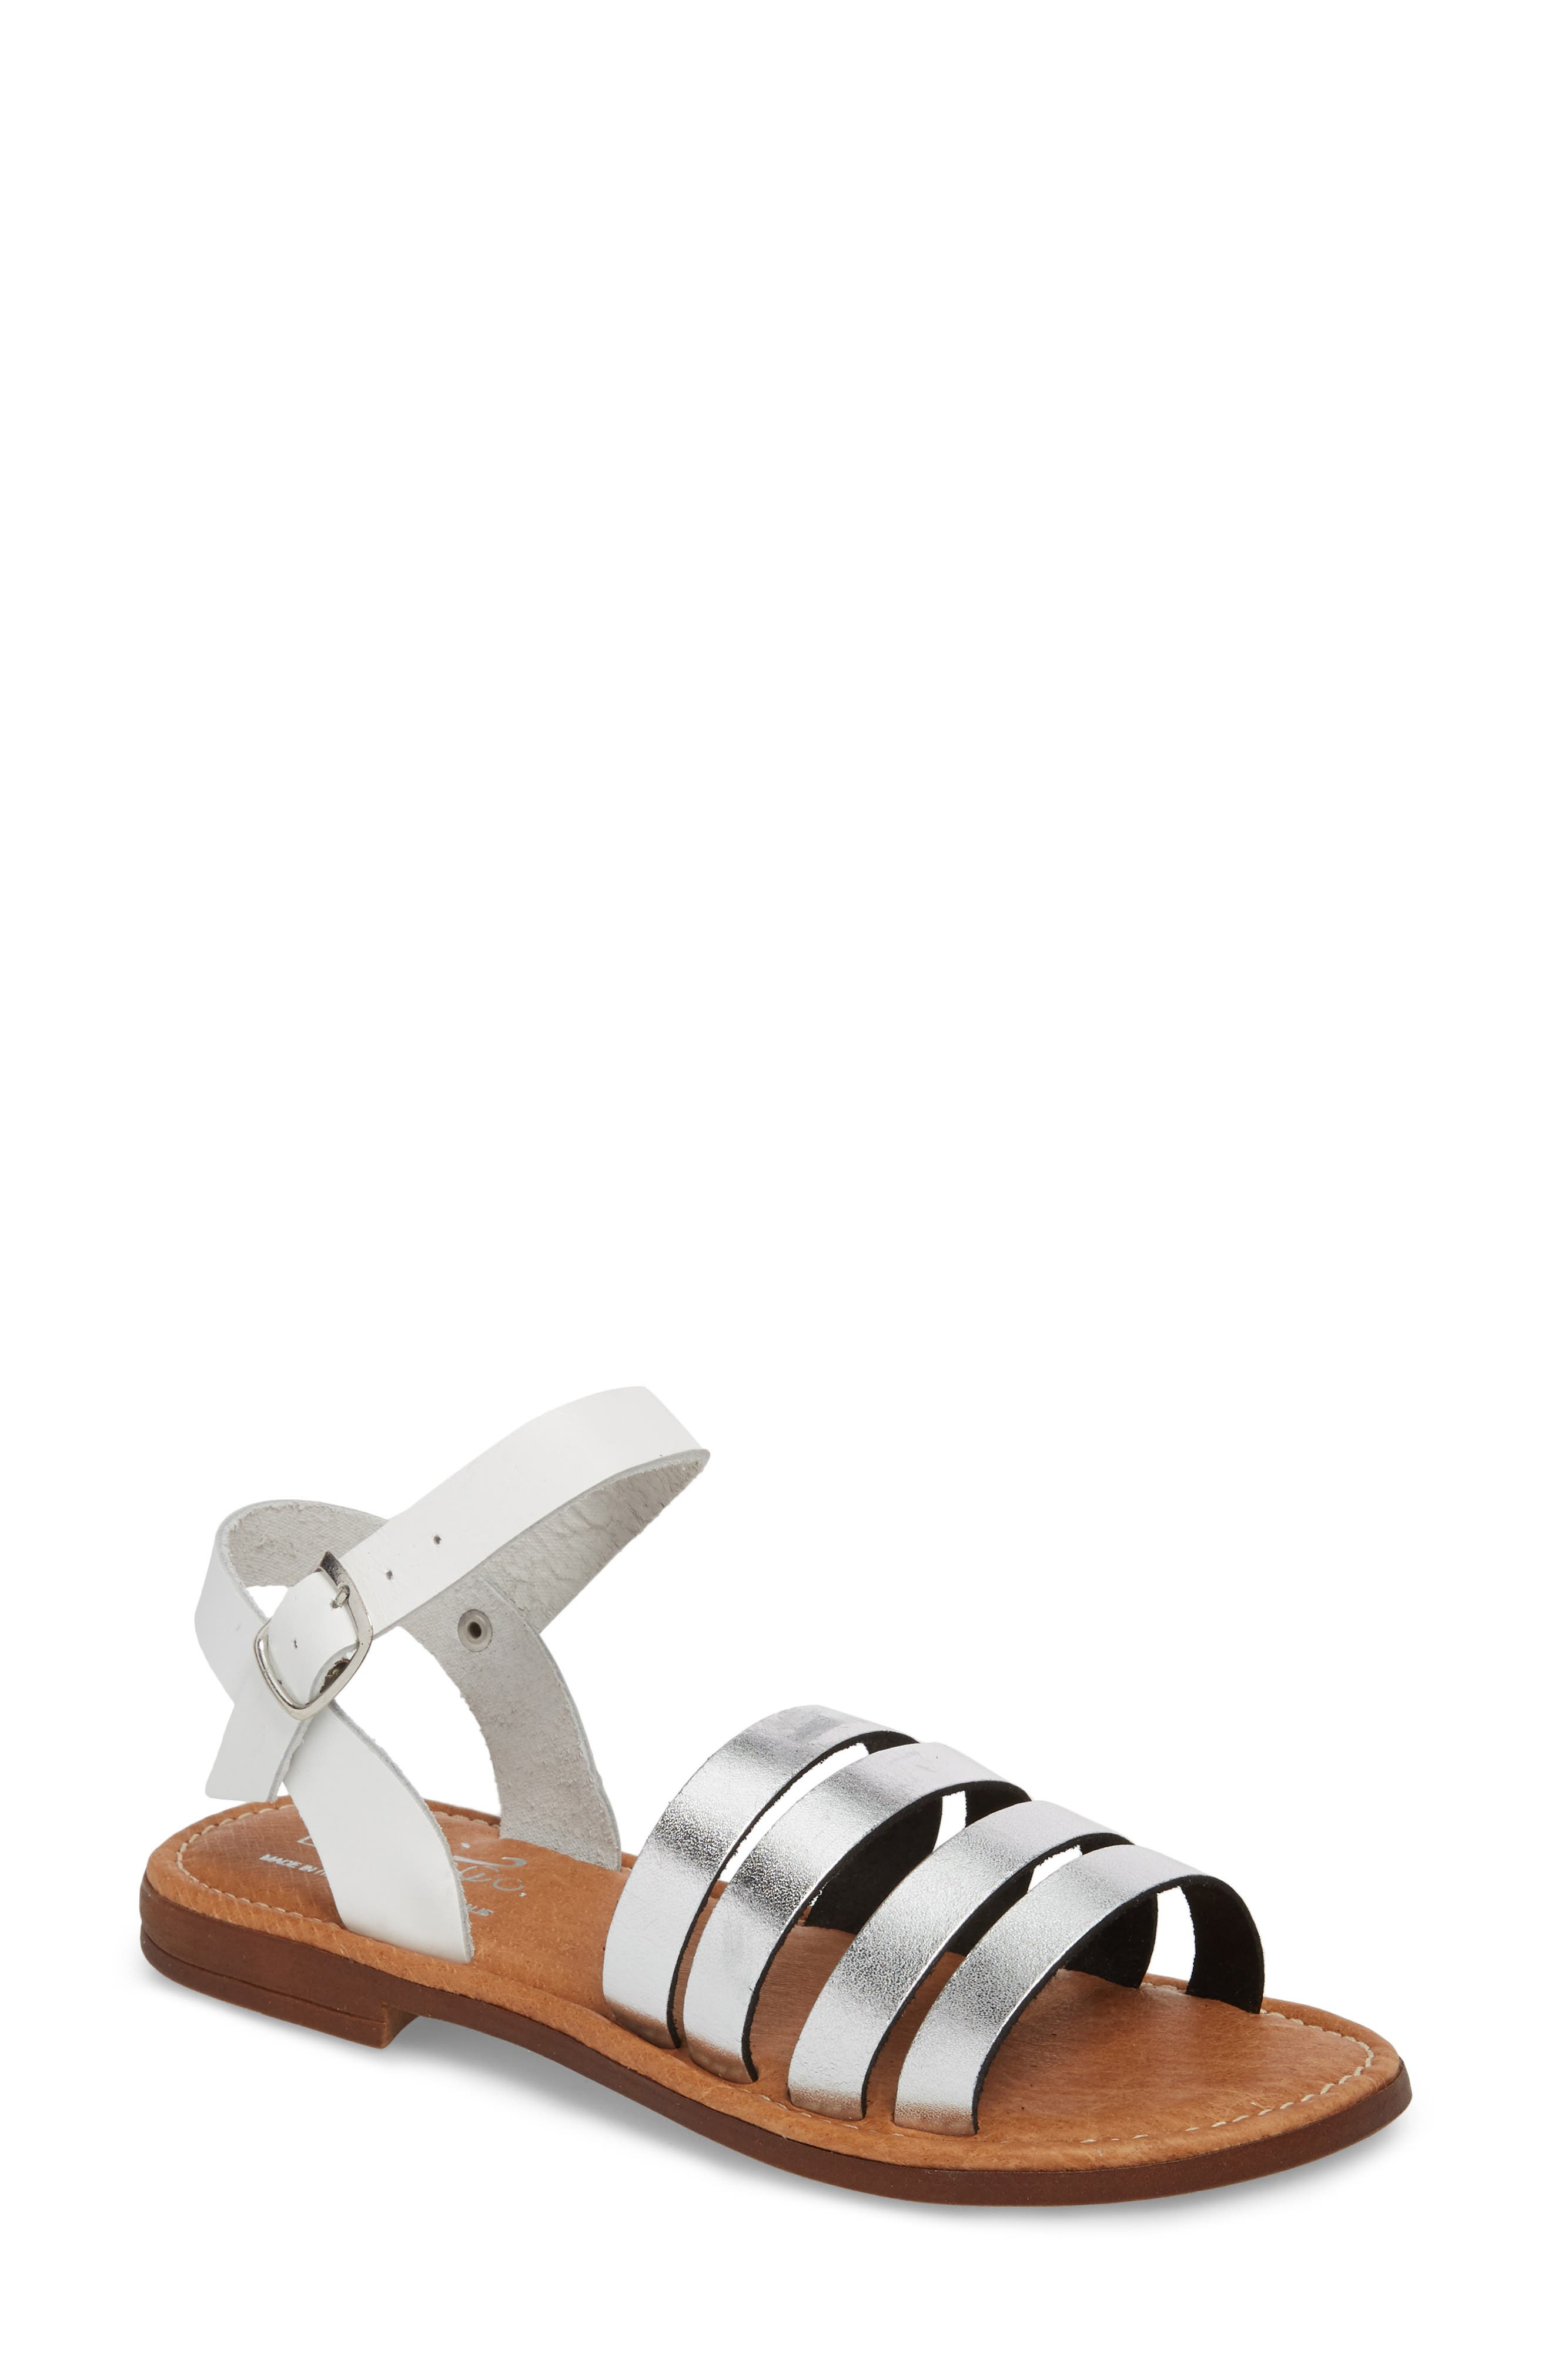 Isle Sandal,                         Main,                         color, Silver/ White Leather